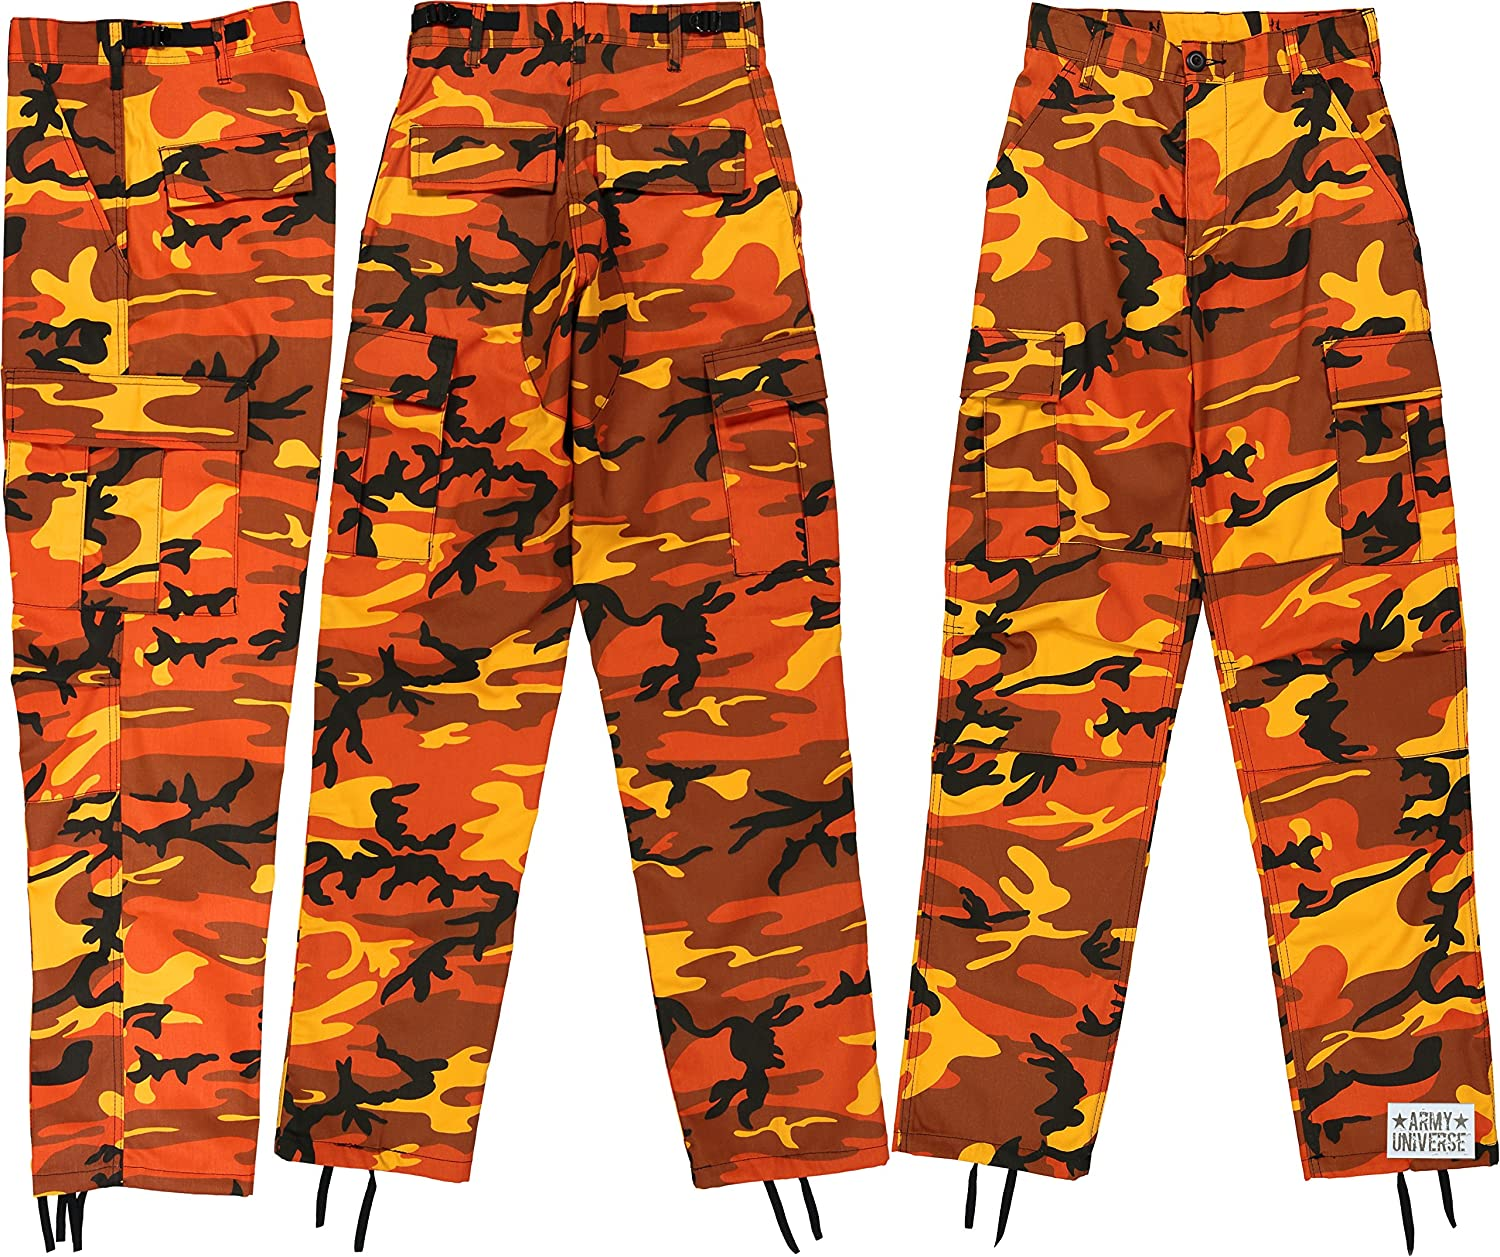 Amazon.com  Army Universe Orange Camo Cargo BDU Pants Hunters Camouflage  Tactical Military Fatigues with Pin  Clothing 7376aea5f5d